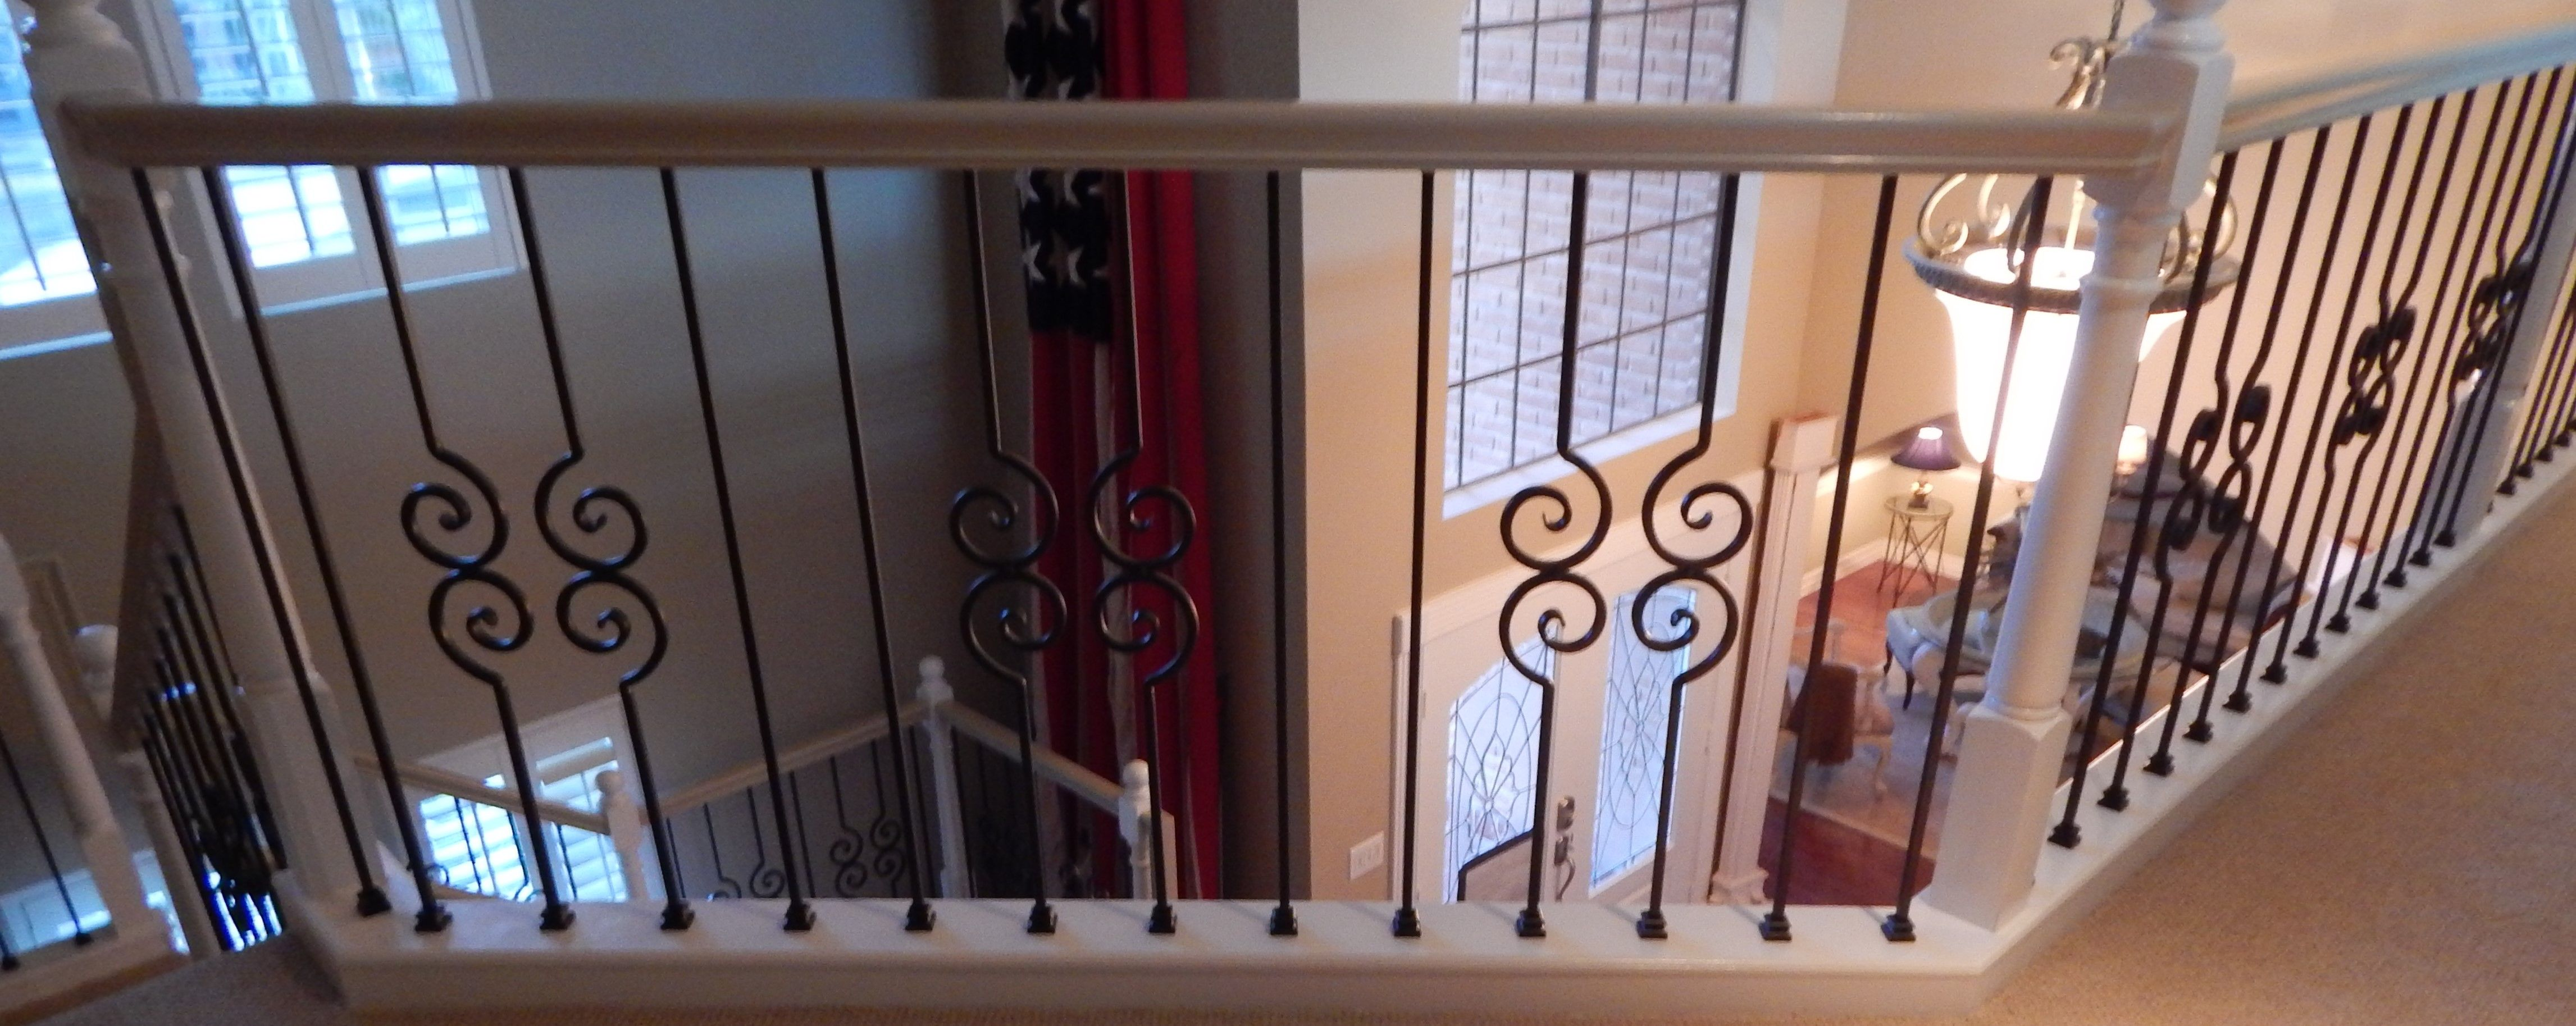 Beautiful Find This Pin And More On Staircase Renovation By Venetian Stairs, Houston  TX By Tscanlon6102.